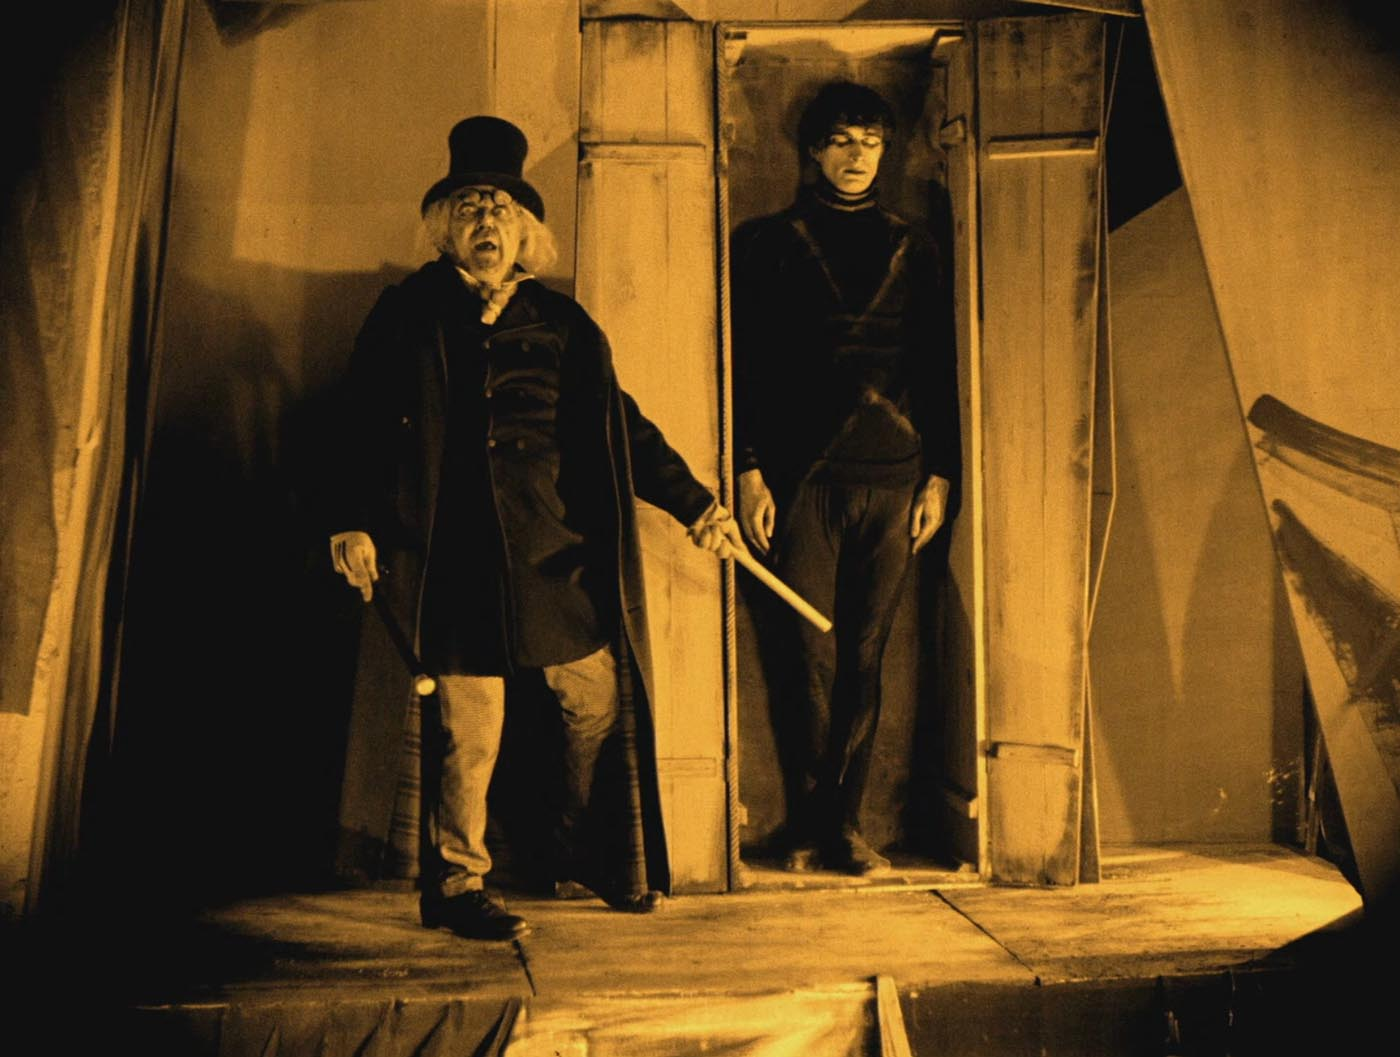 cabinet-dr-caligari-1920-2